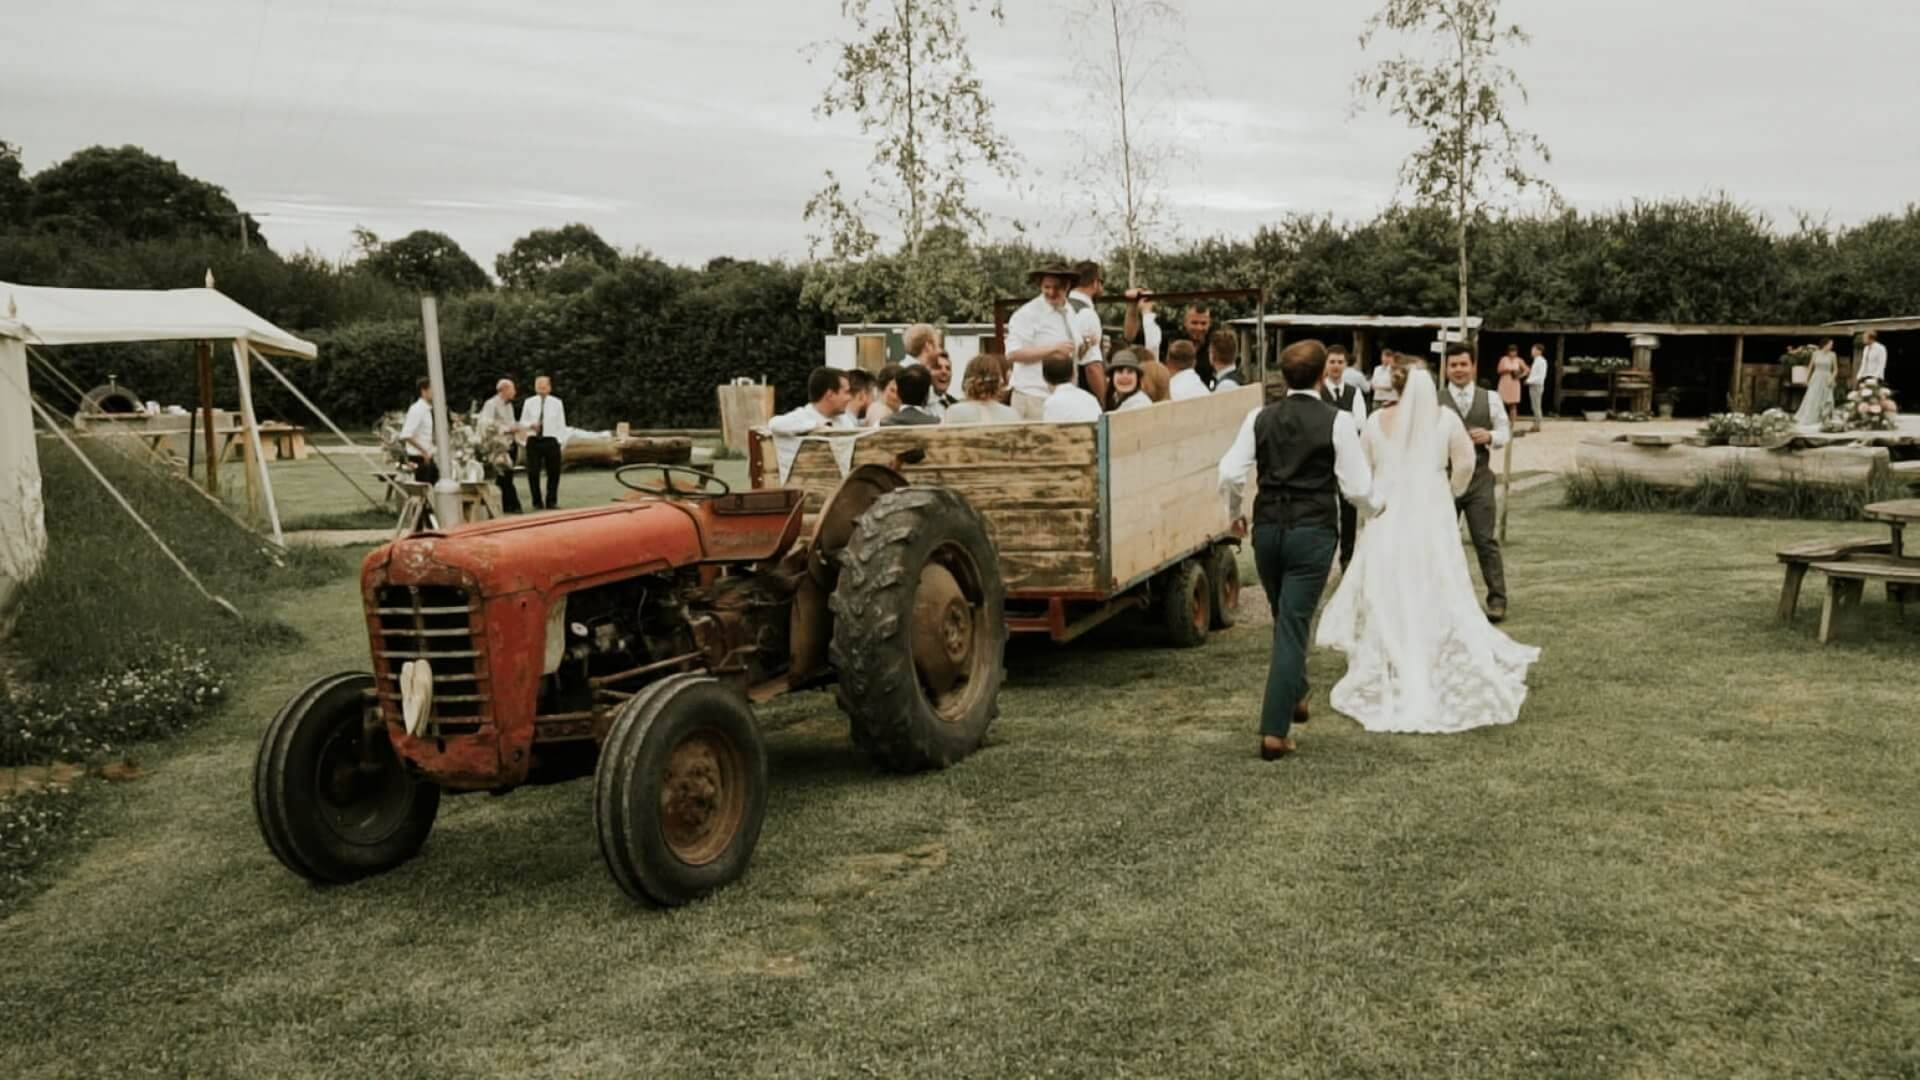 Wedding couple having a tractor ride during reception